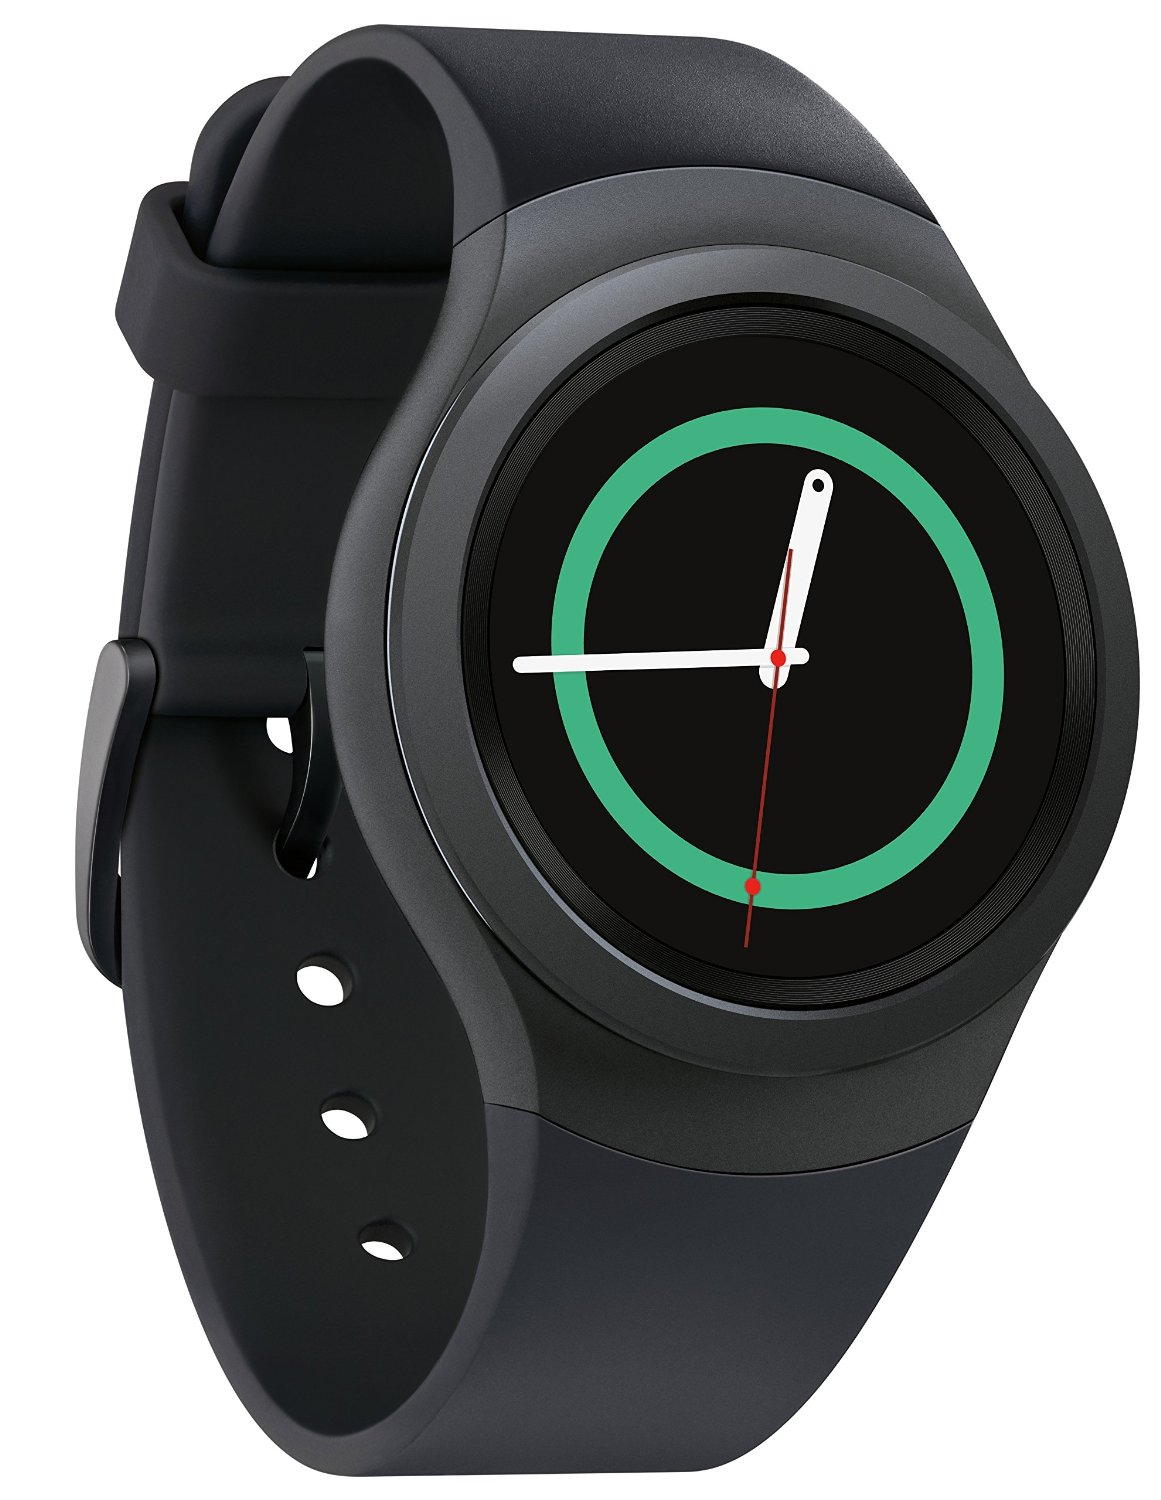 Samsung Gear S2 SmartWatch for Android Reviews